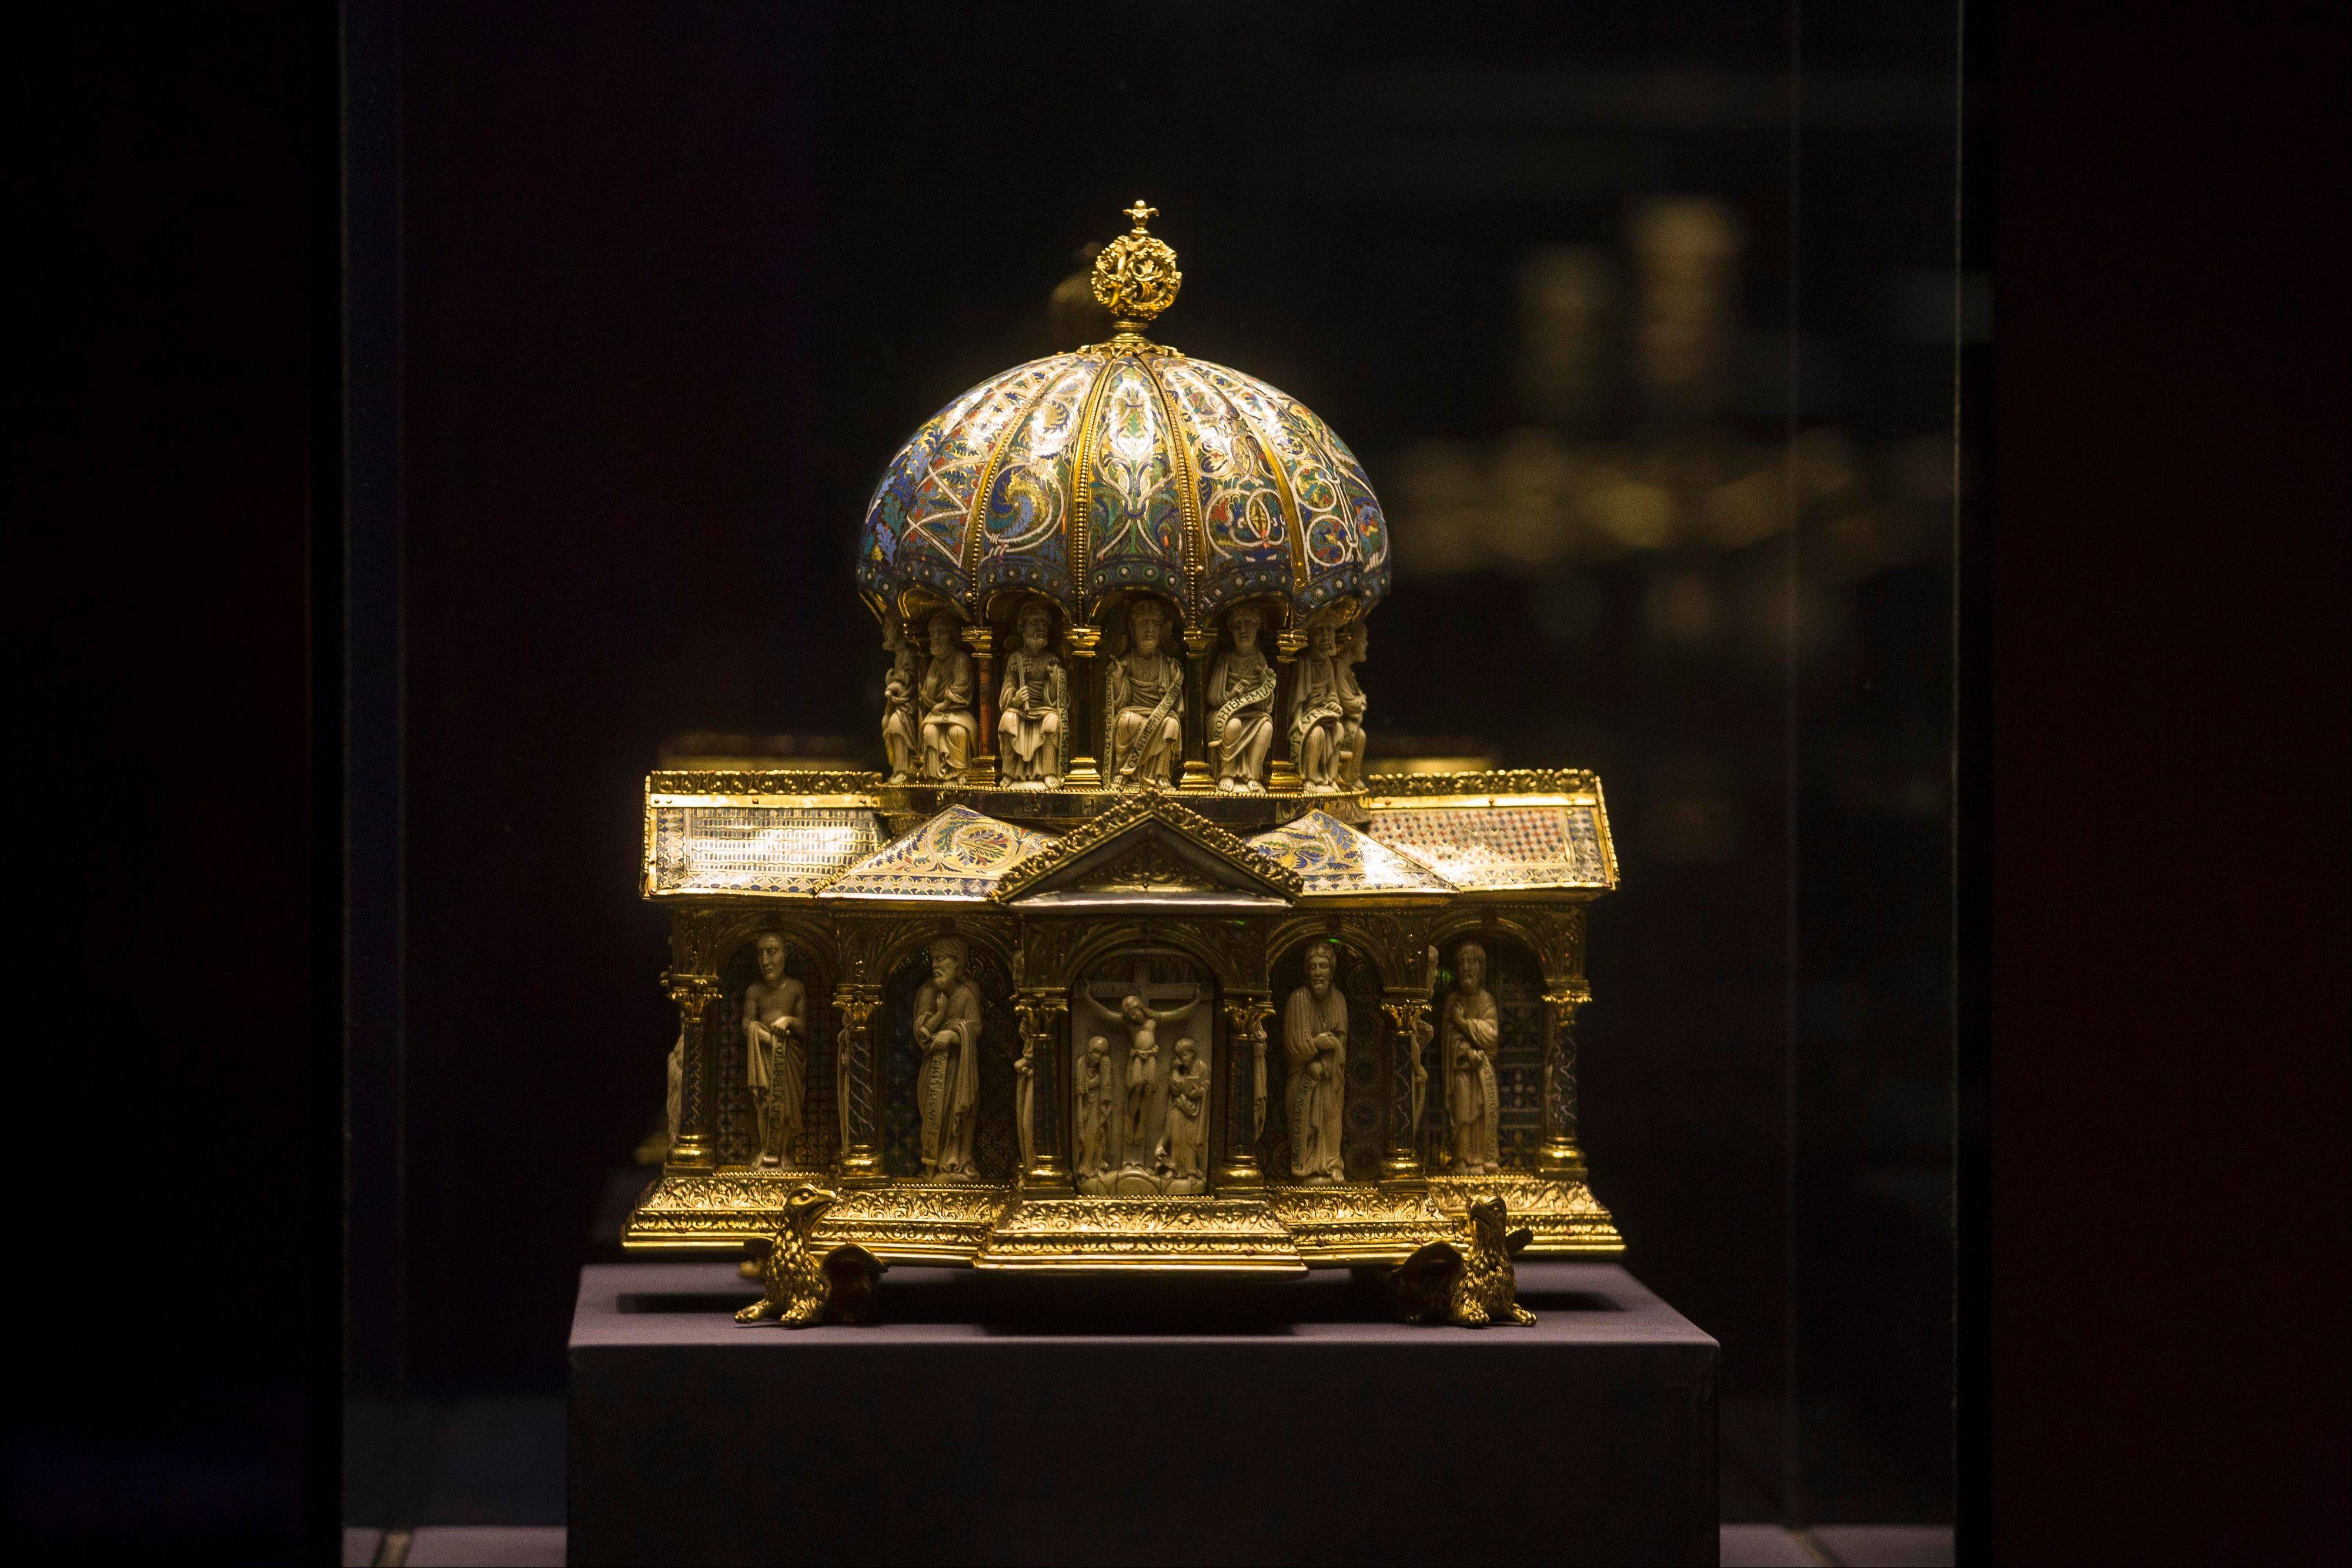 The medieval Dome Reliquary (13th century) of the Welfenschatz, at the Bode Museum.